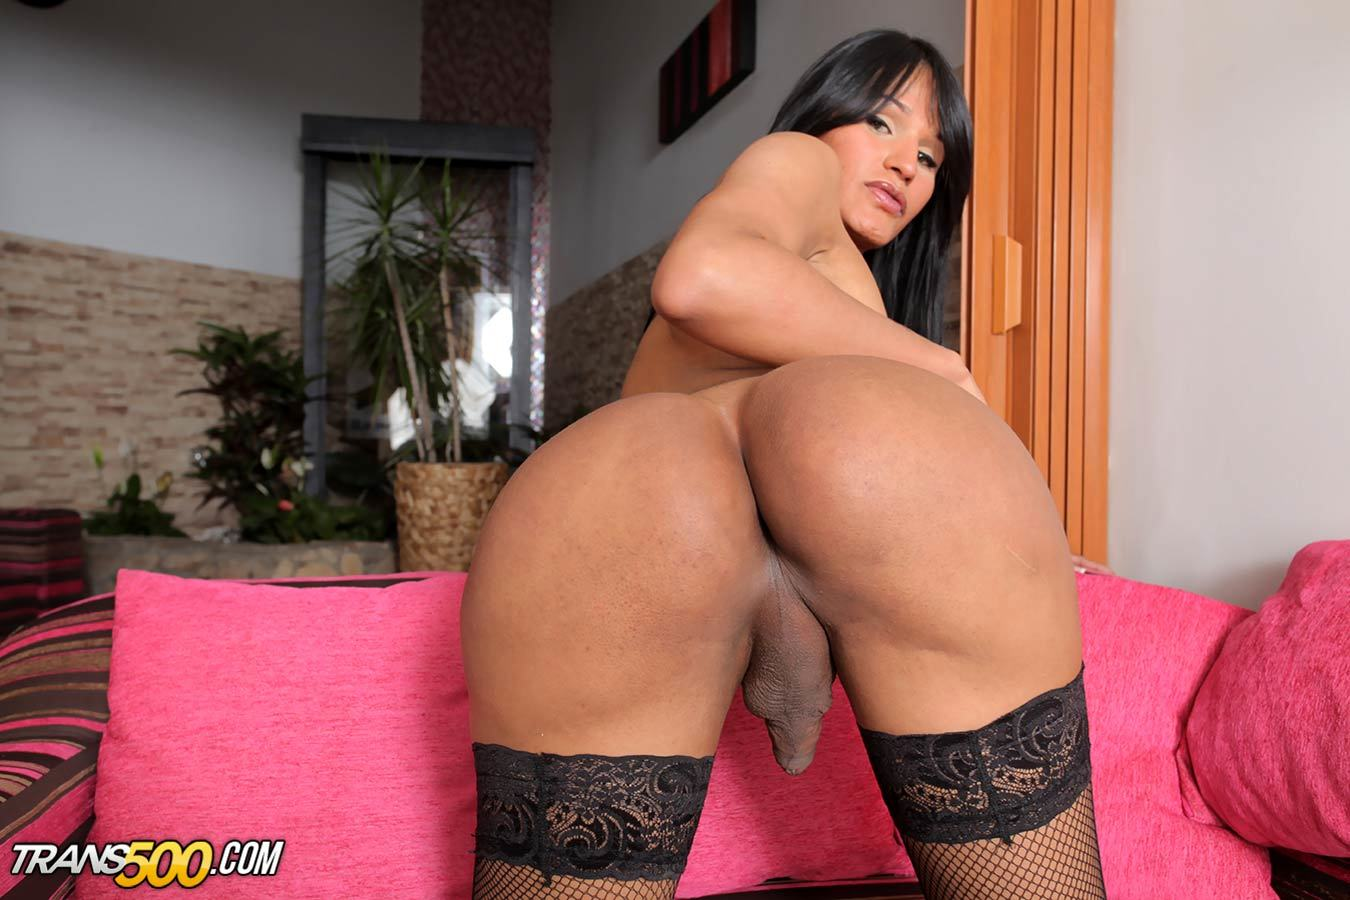 Watch The Titillating Colombian Transsexual Vernica Xxx Go At It In Her Solo Masturbation Scene